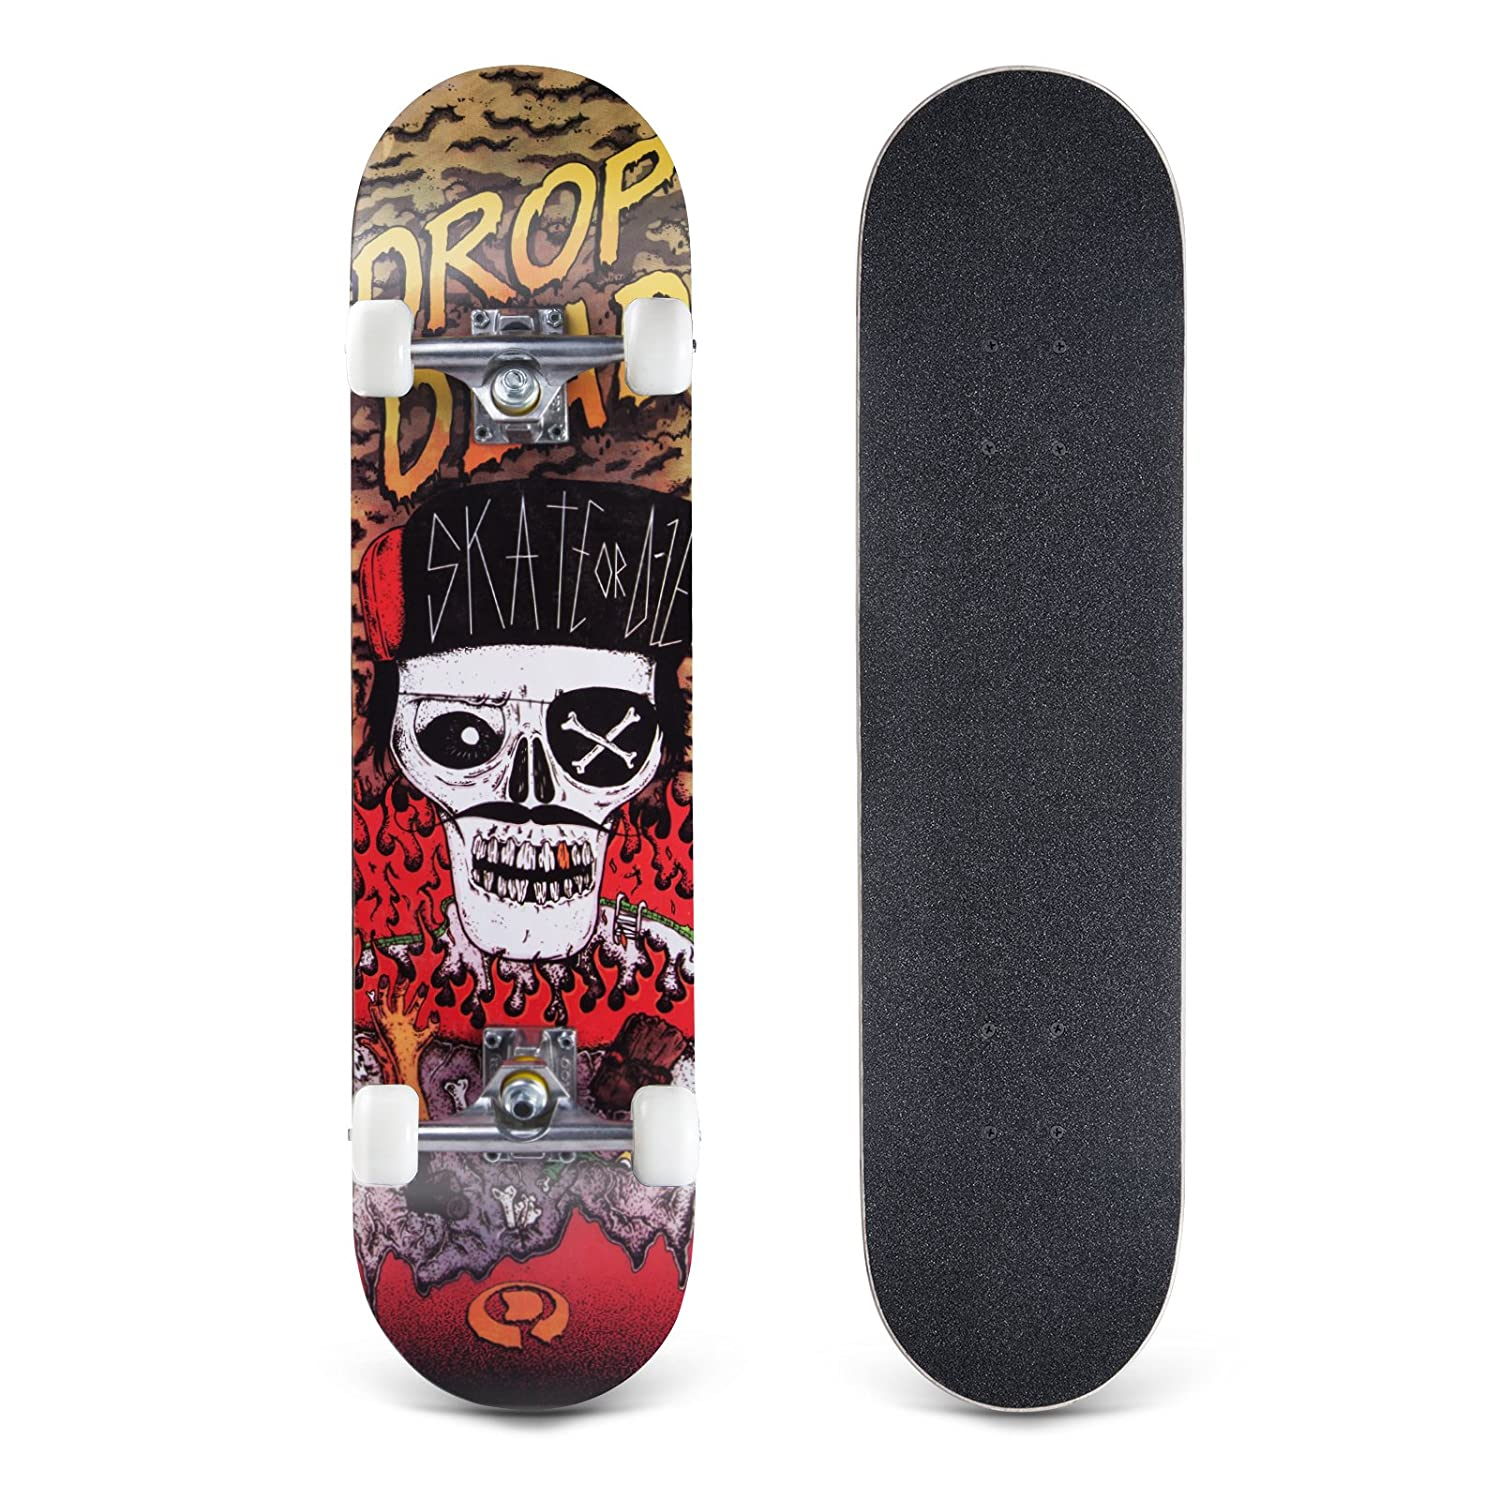 Bormart Skateboards 31 Inch Pro Complete Standard Skateboard 8 Layer Maple  Skateboard Deck for Extreme Sports Outdoors Durable Skate Board for